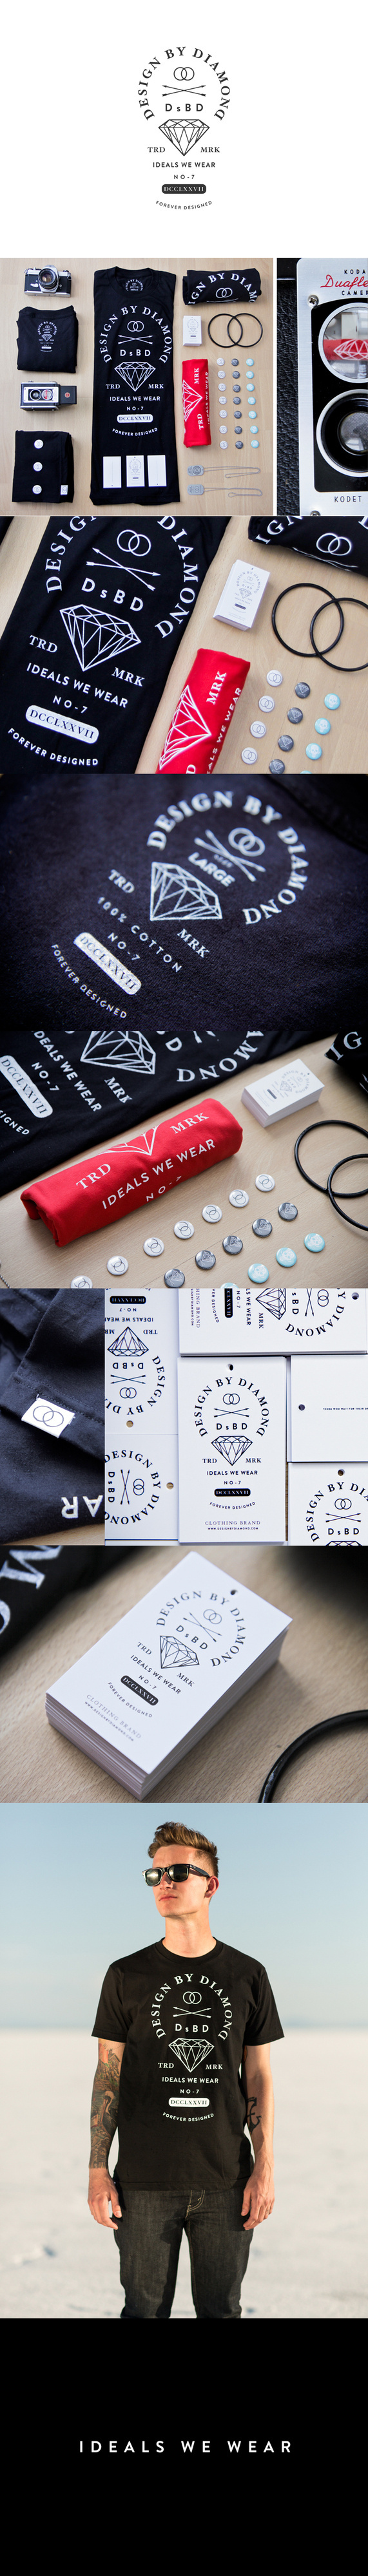 Ideals_we_wear_dribbble_detail #layout #tee #branding #diamond